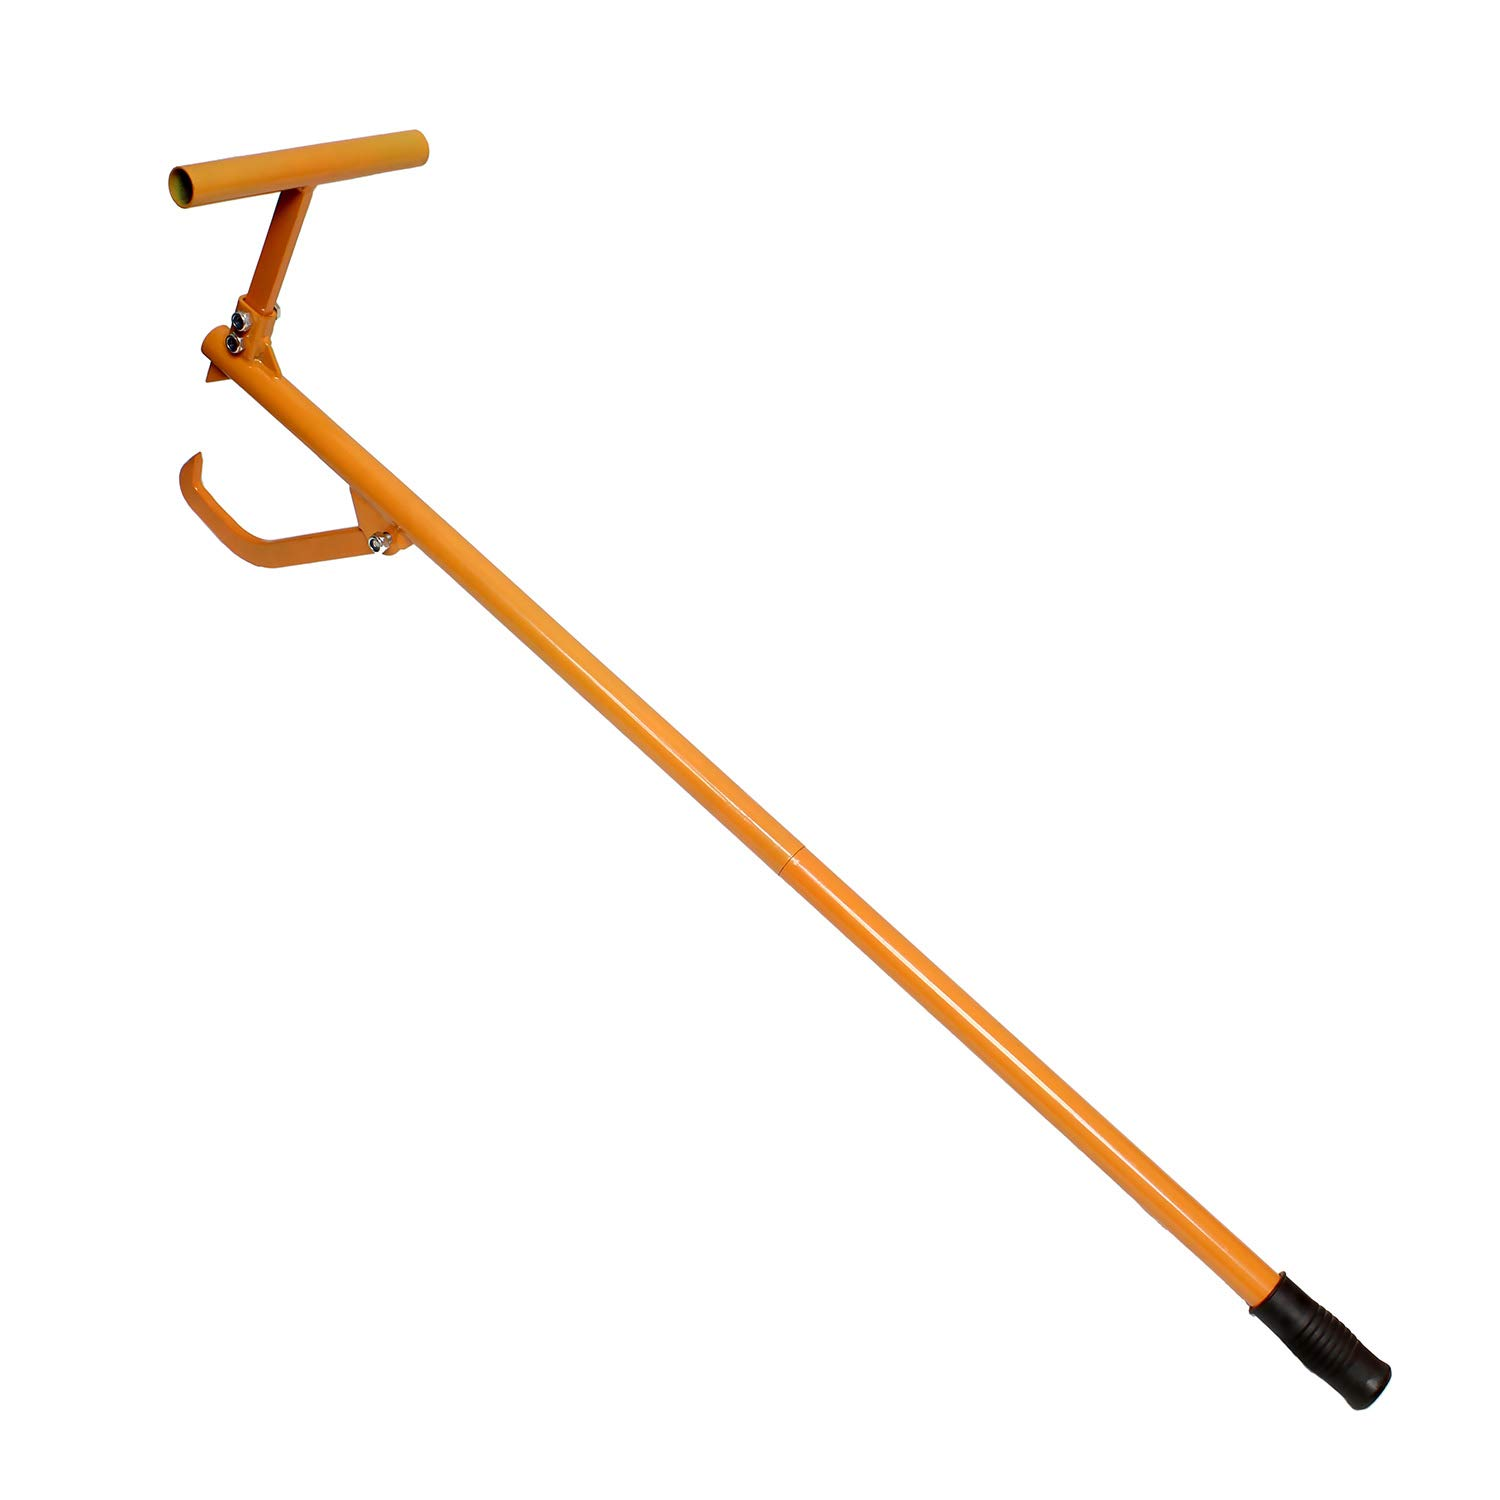 """Felled Steel Timberjack – 48"""" Inch Timber Jack Tool, Cant Hook Log Roller Tool with Log Hook for Felling and Logging"""